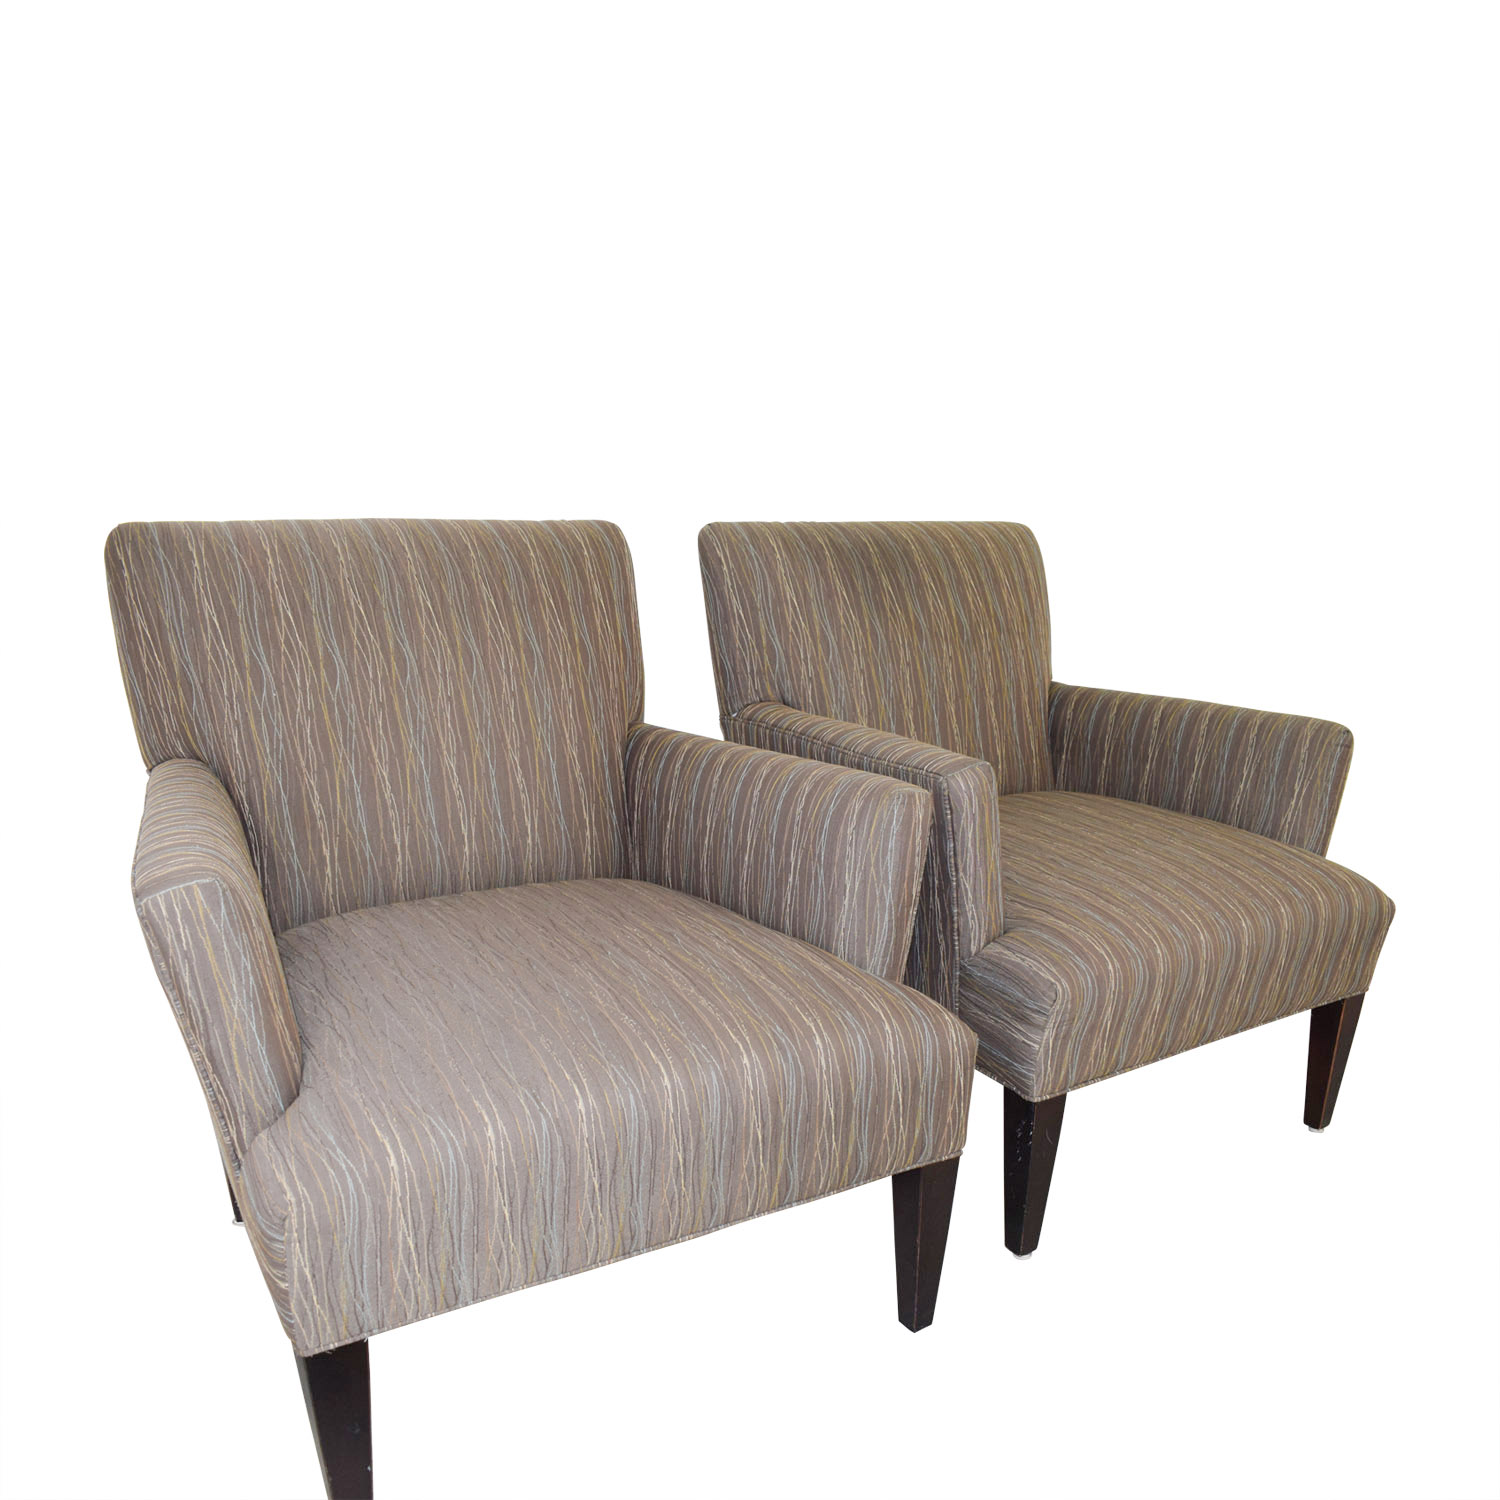 Room & Board Room & Board Multi-Colored Patterned Armchairs on sale